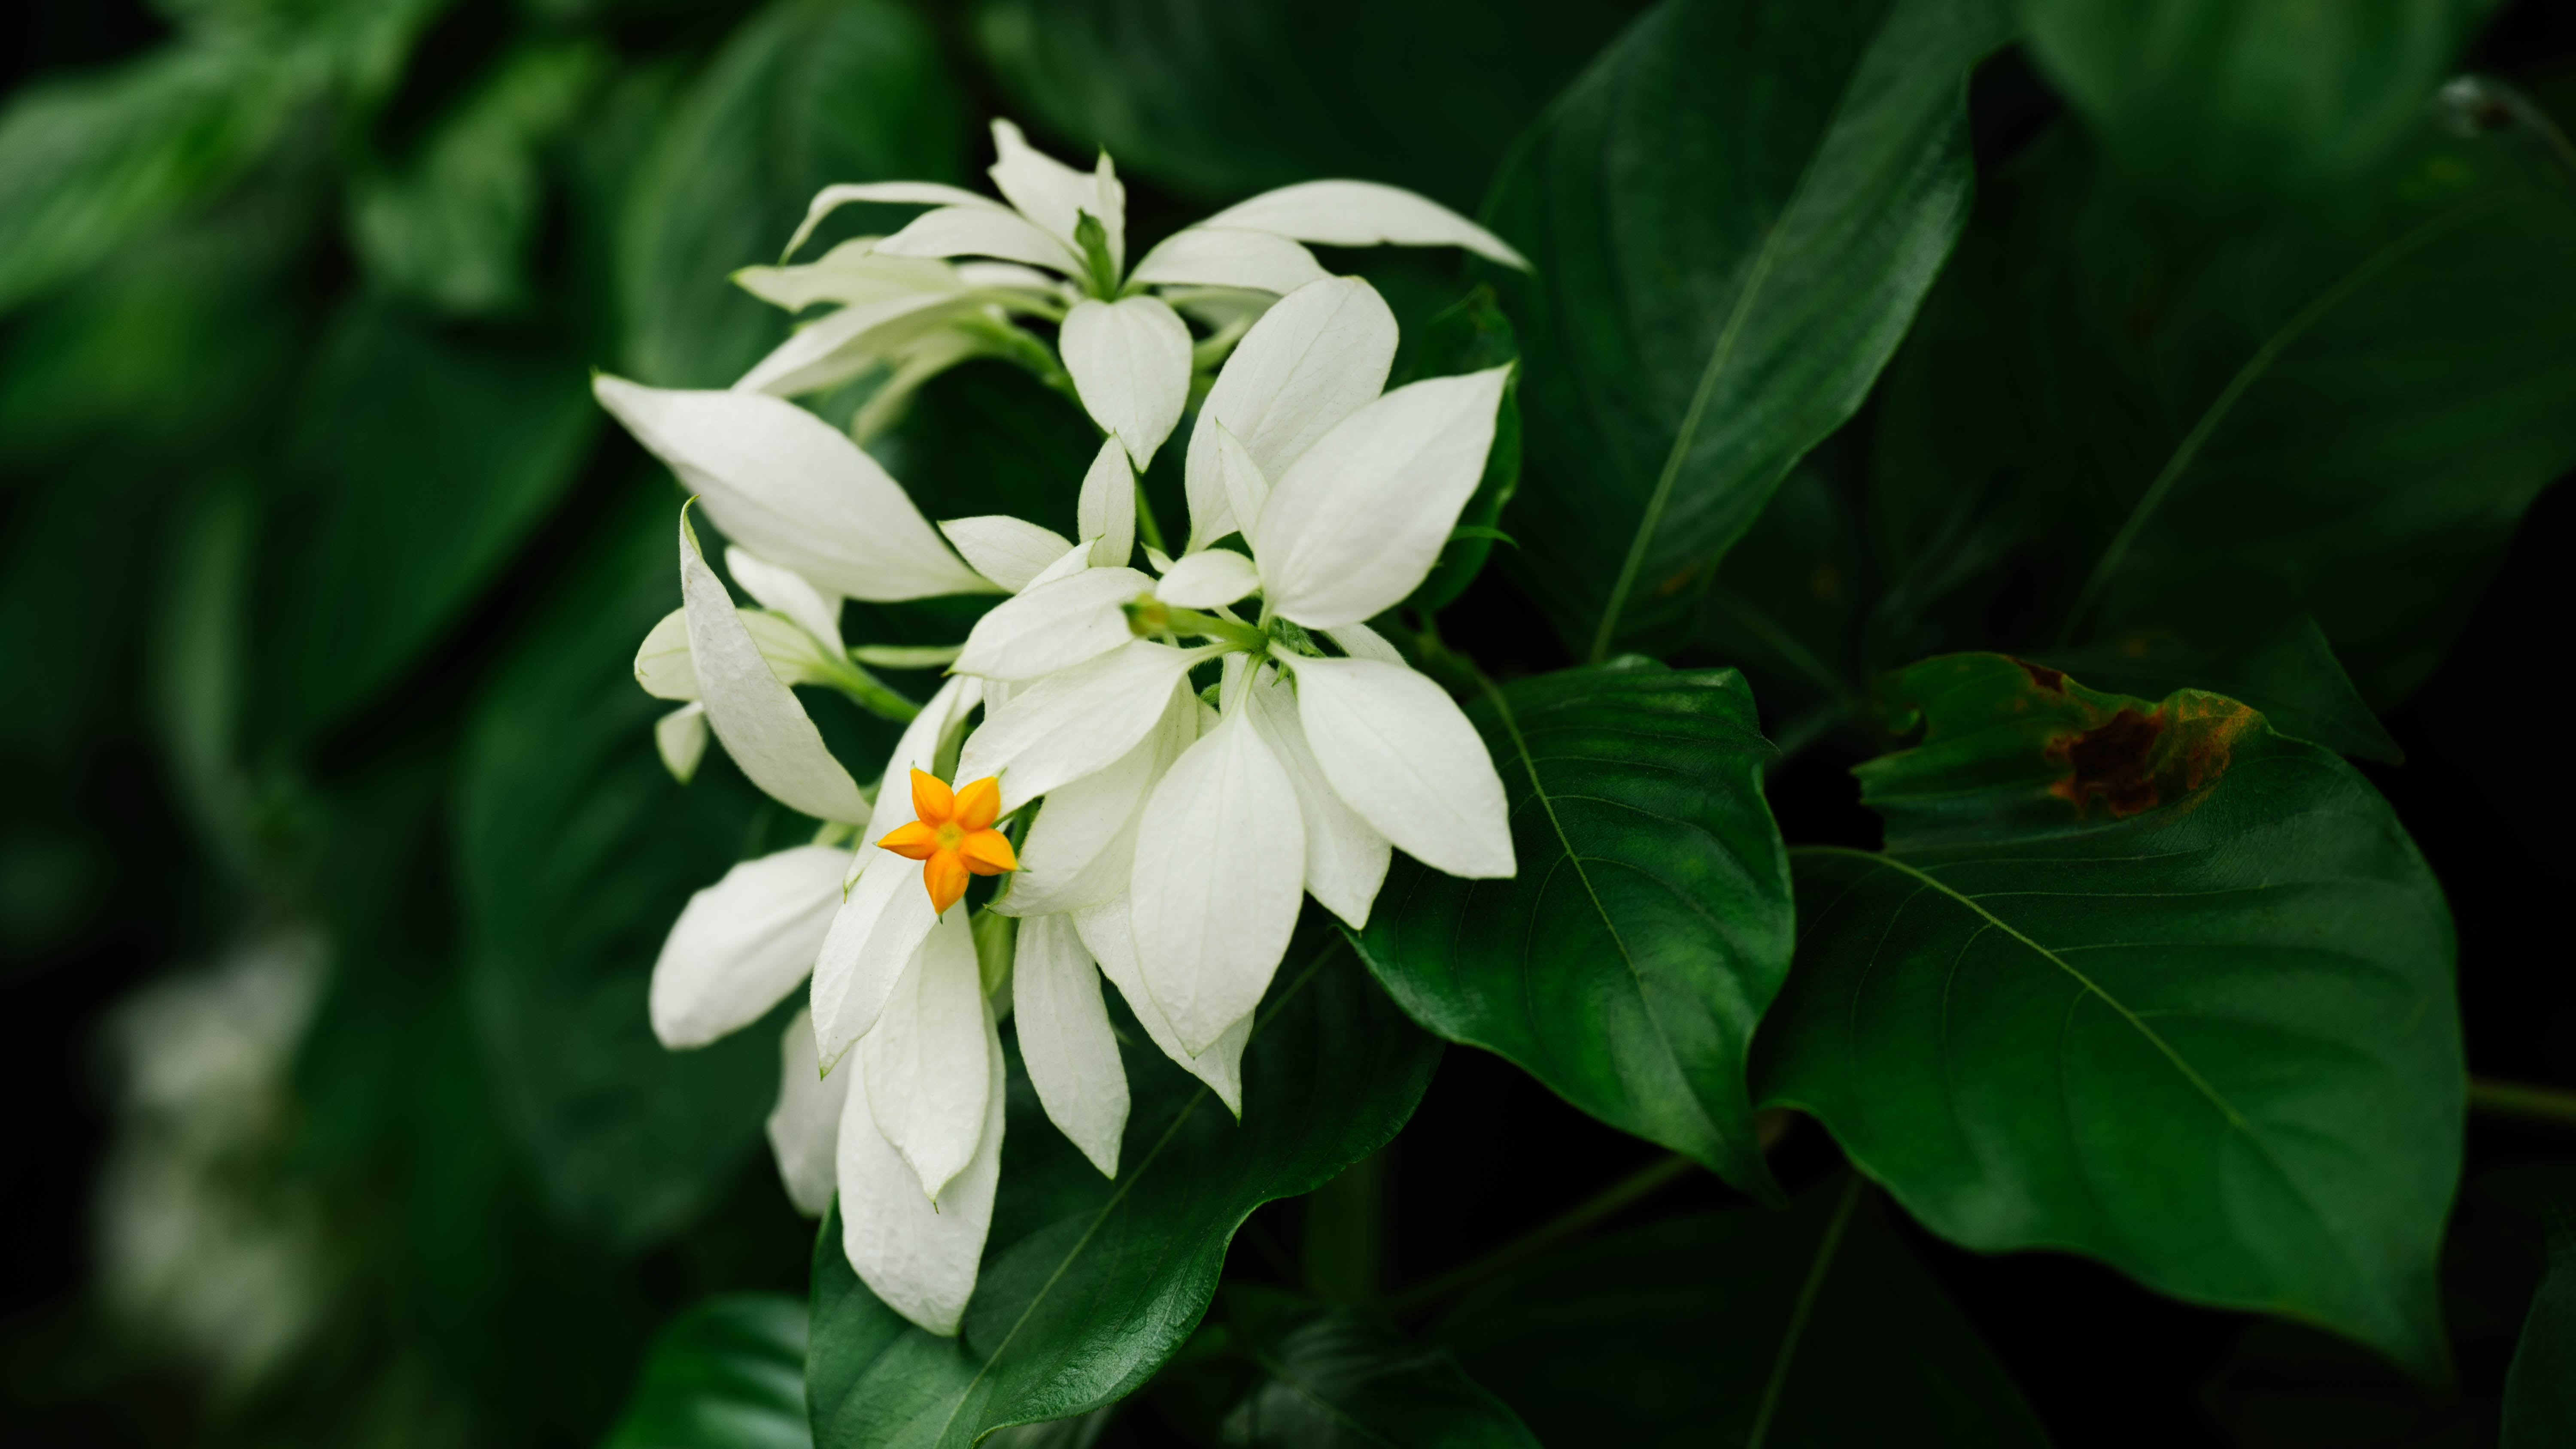 shallow focus photo of white flowers near green leaves